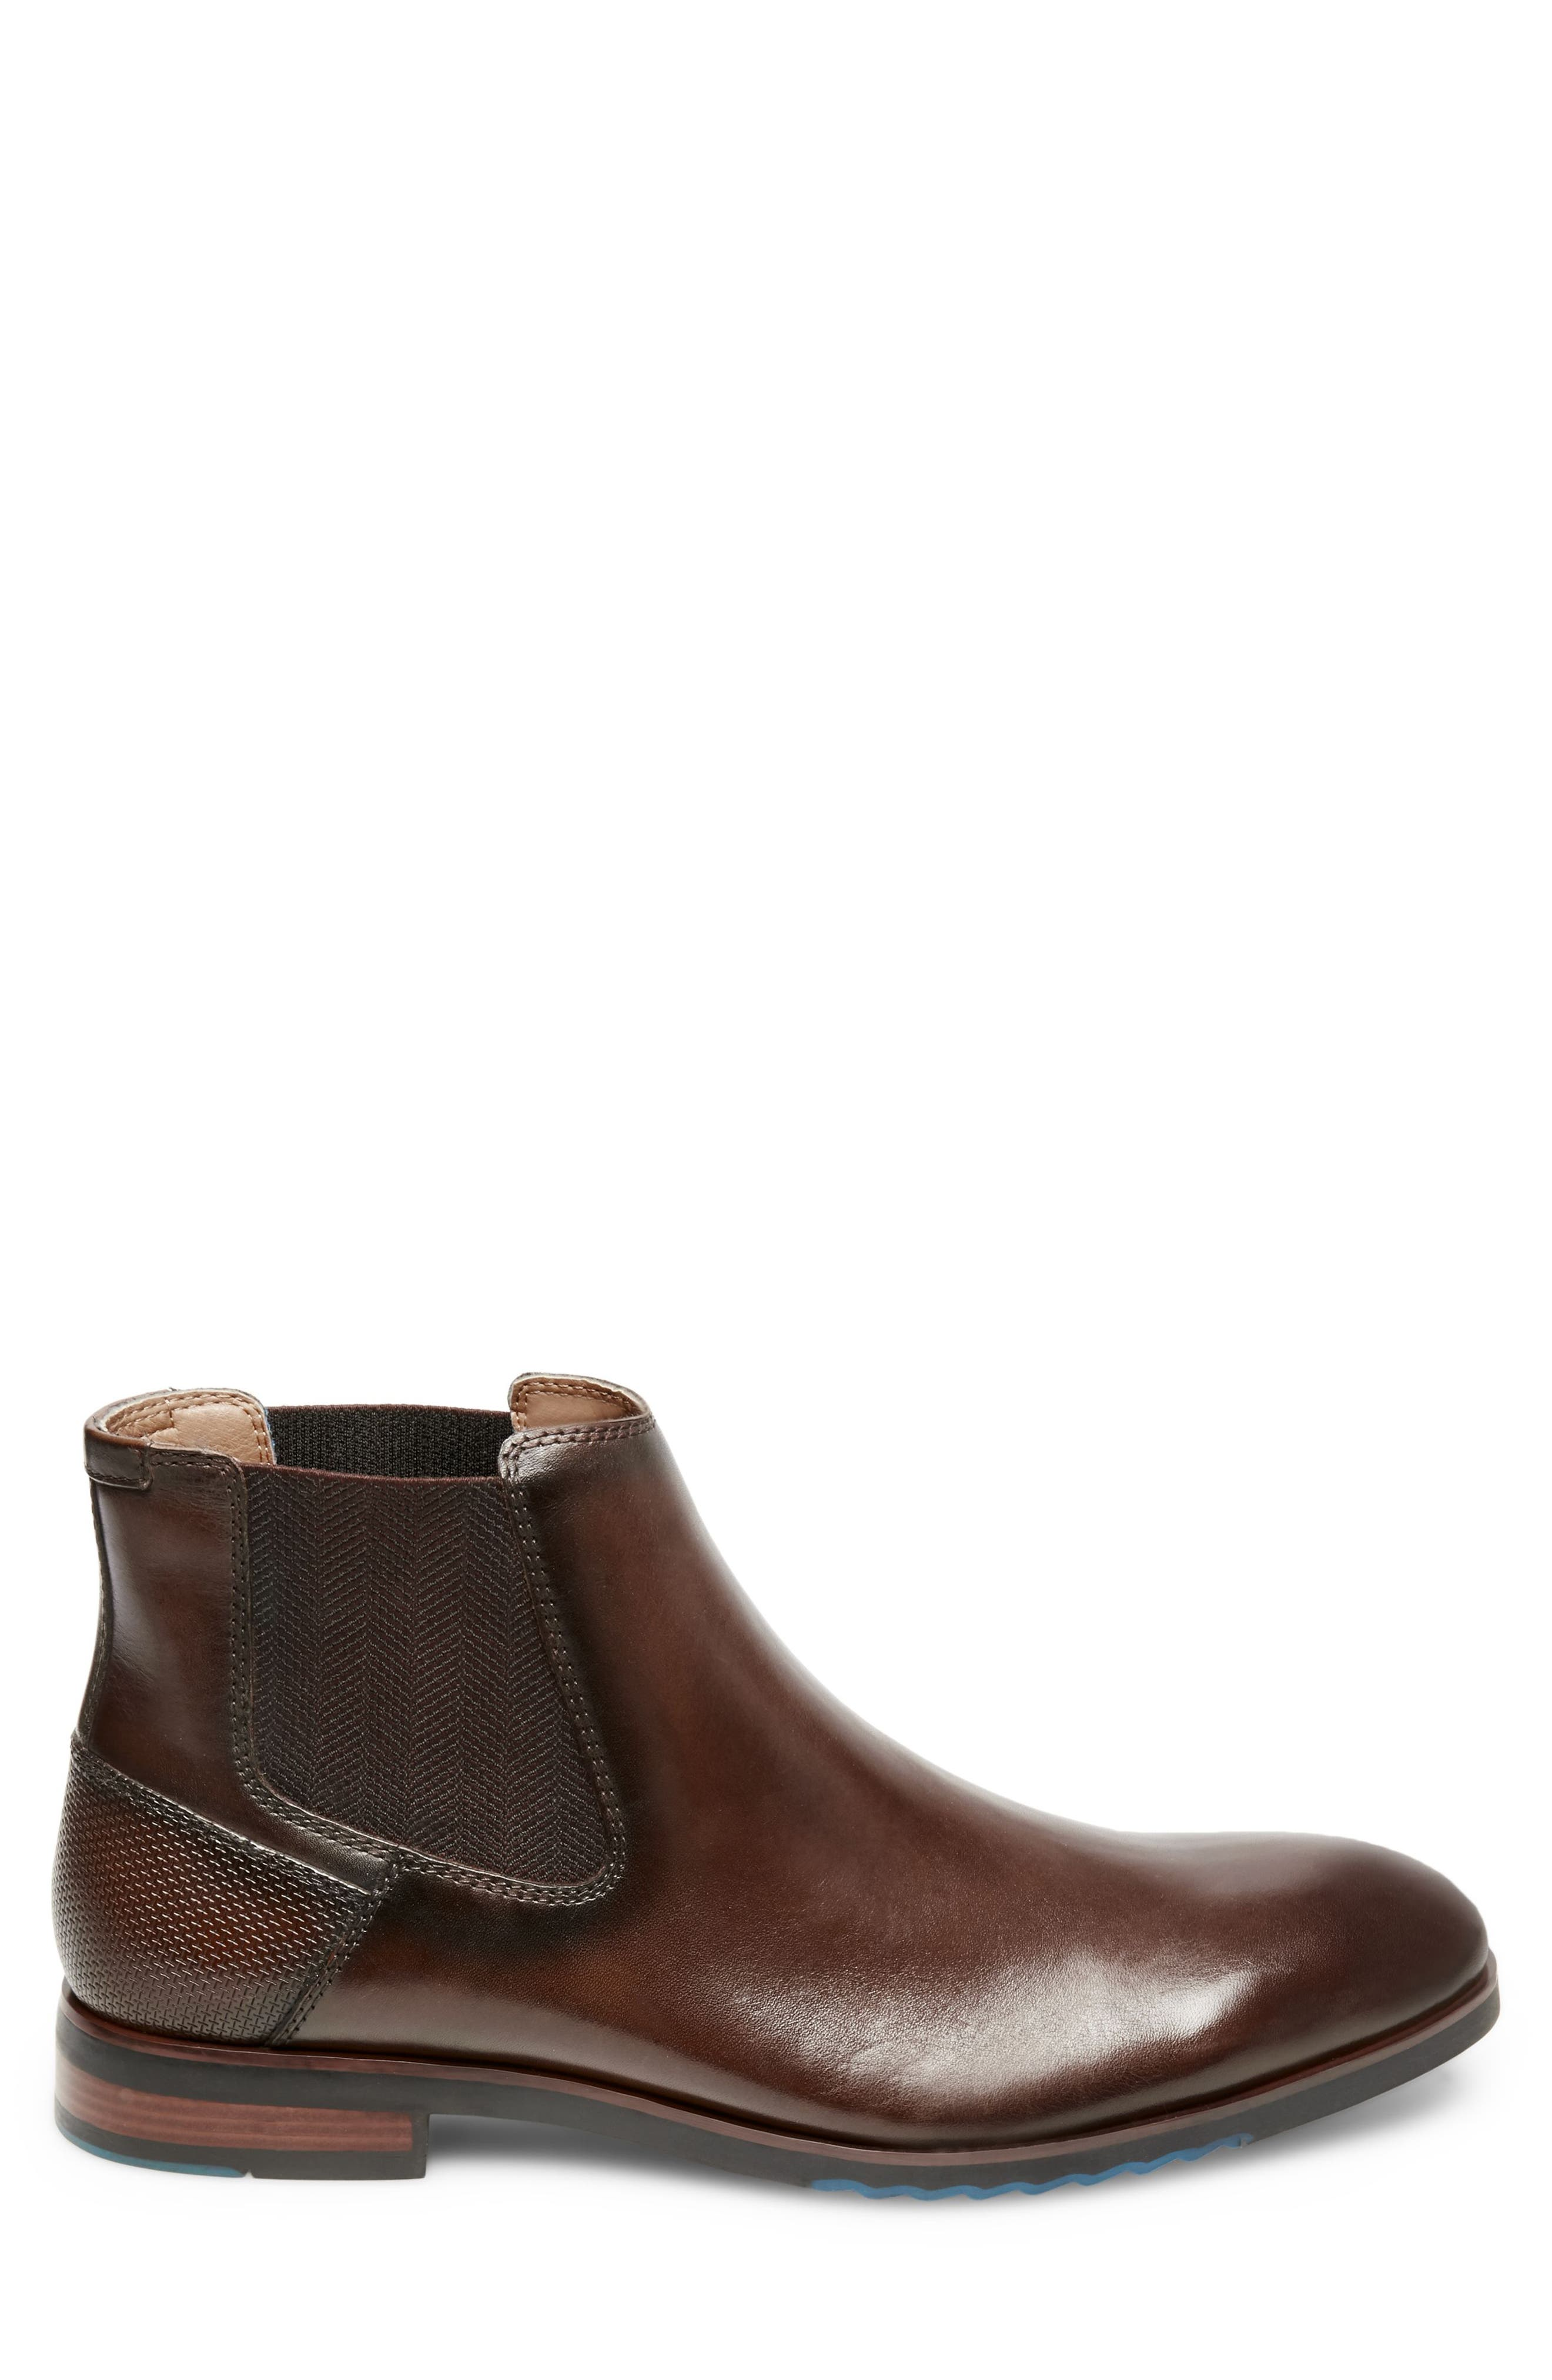 Leston Chelsea Boot,                             Alternate thumbnail 3, color,                             BROWN LEATHER